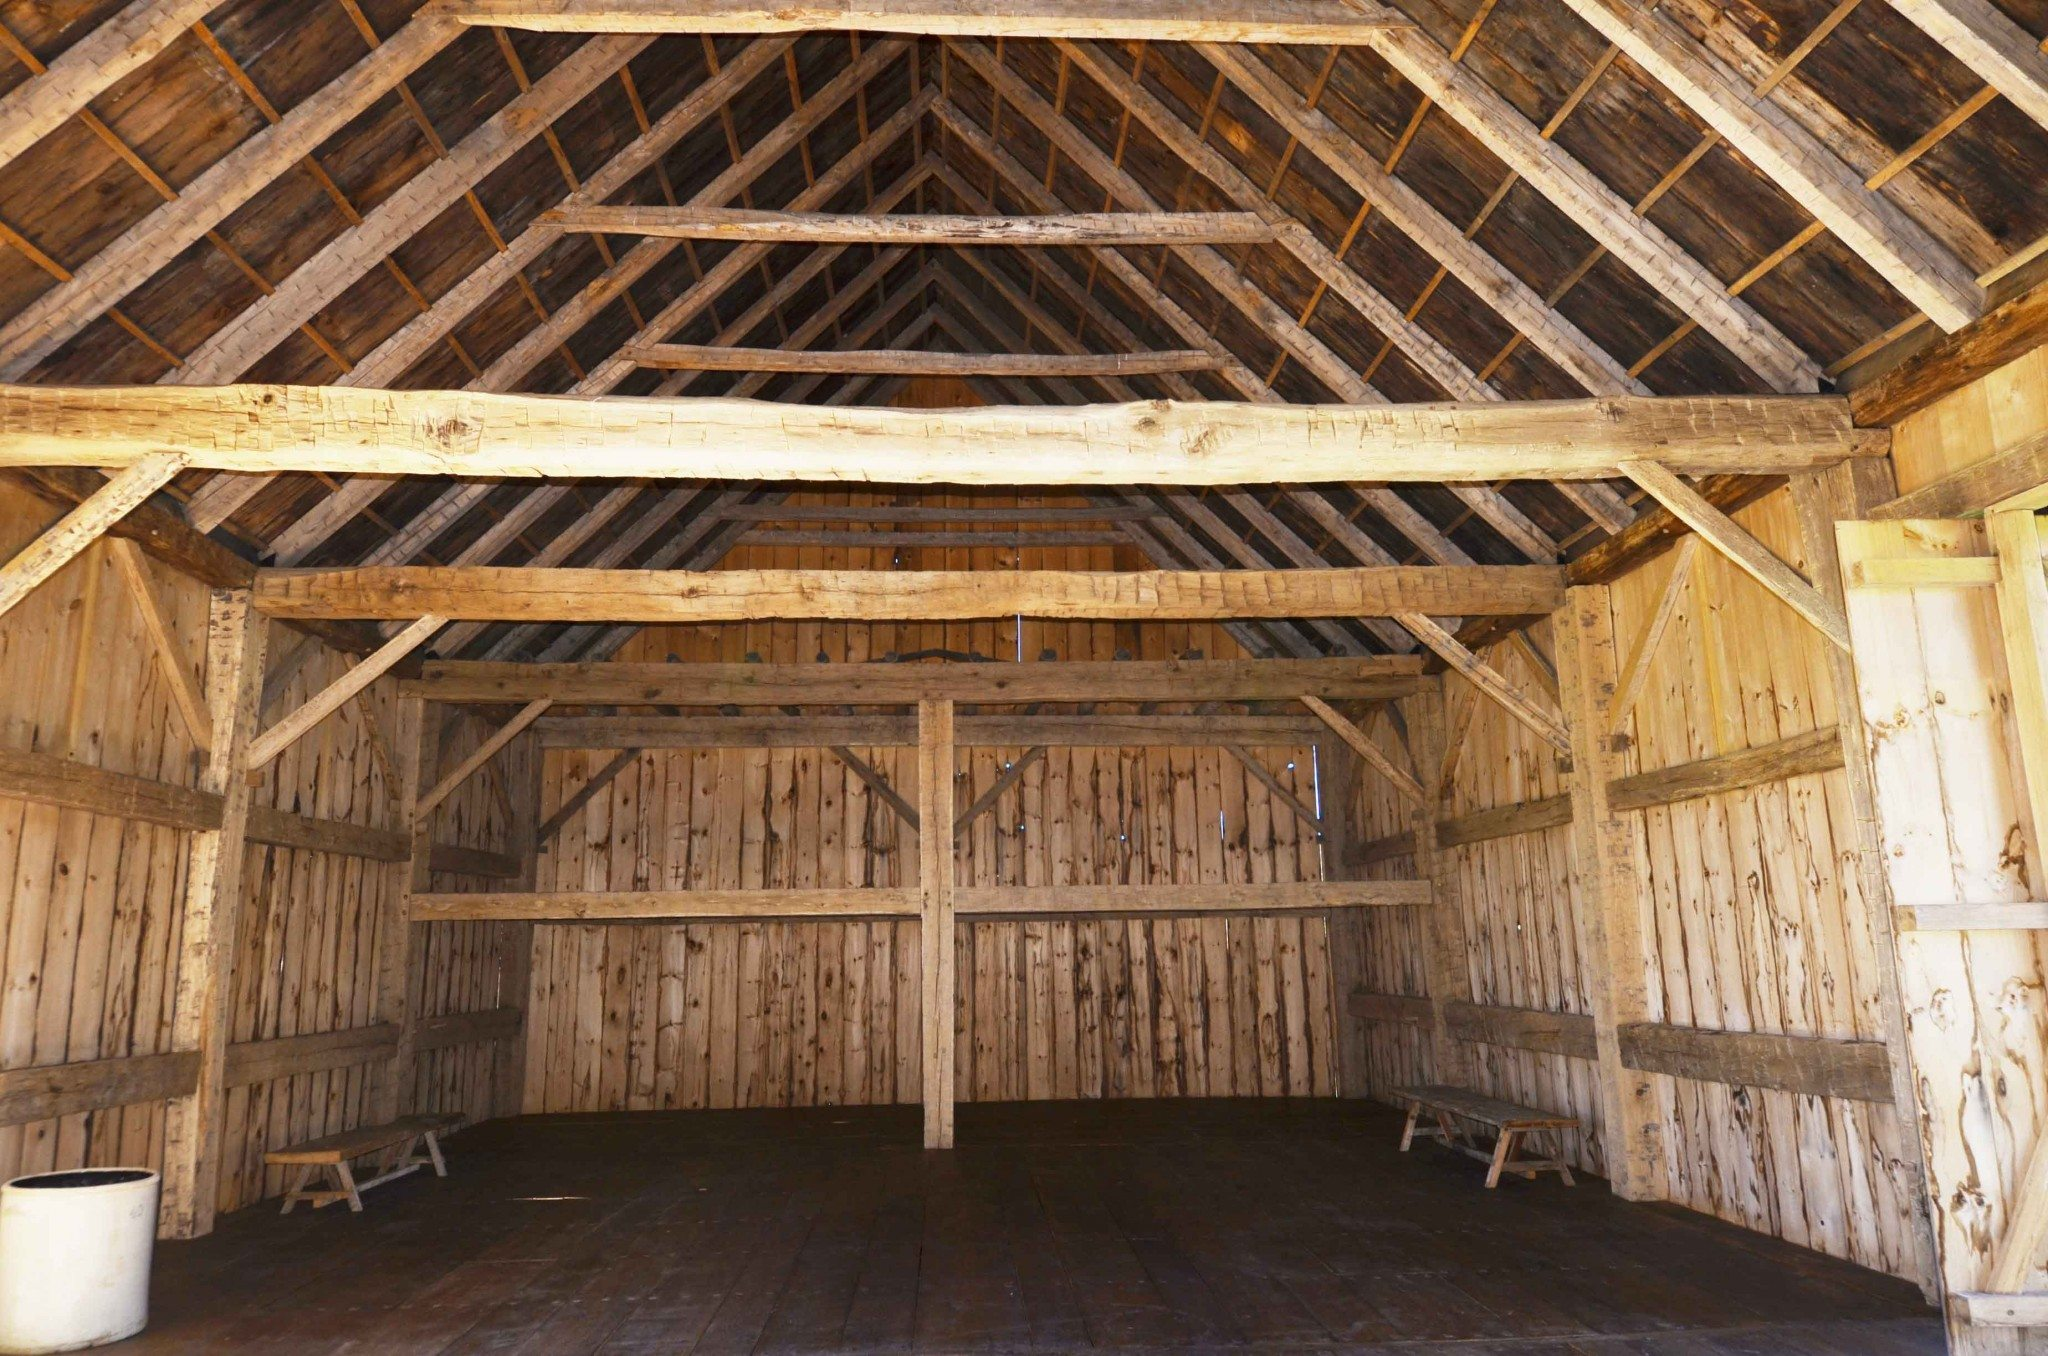 Scottish Barn interior, 2015, Photograph by Constance Kheel